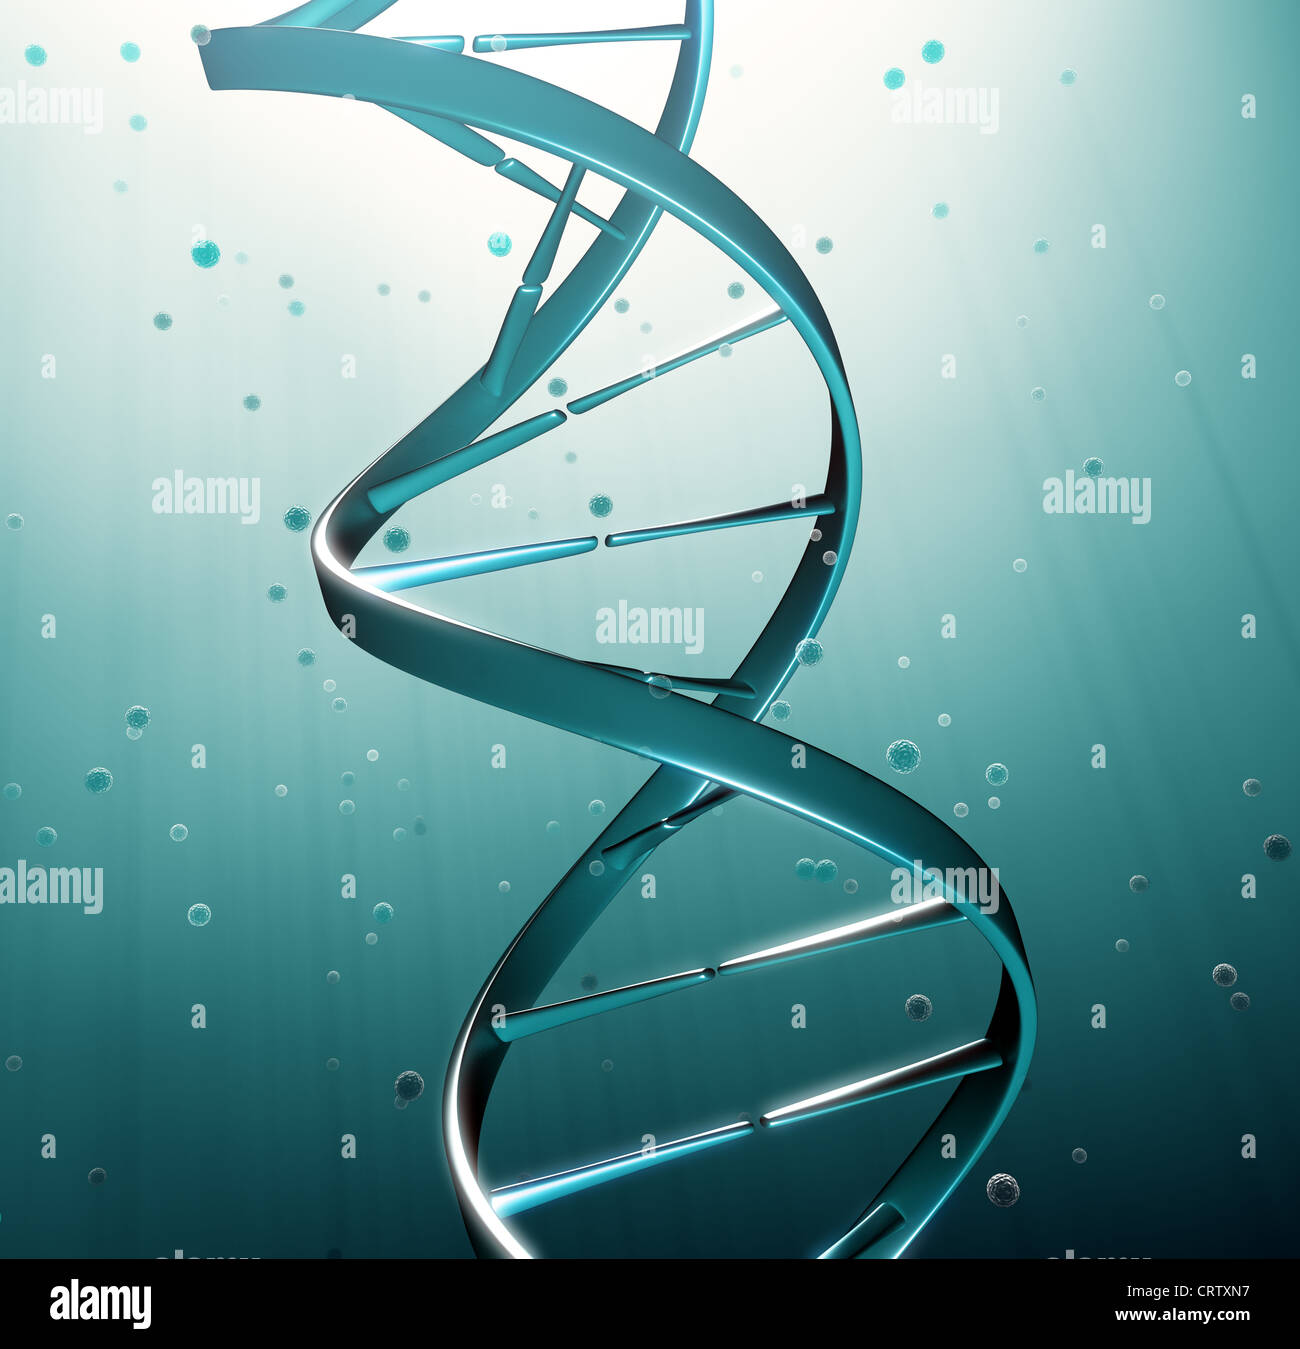 DNA strand iluustration - genetic research - Stock Image